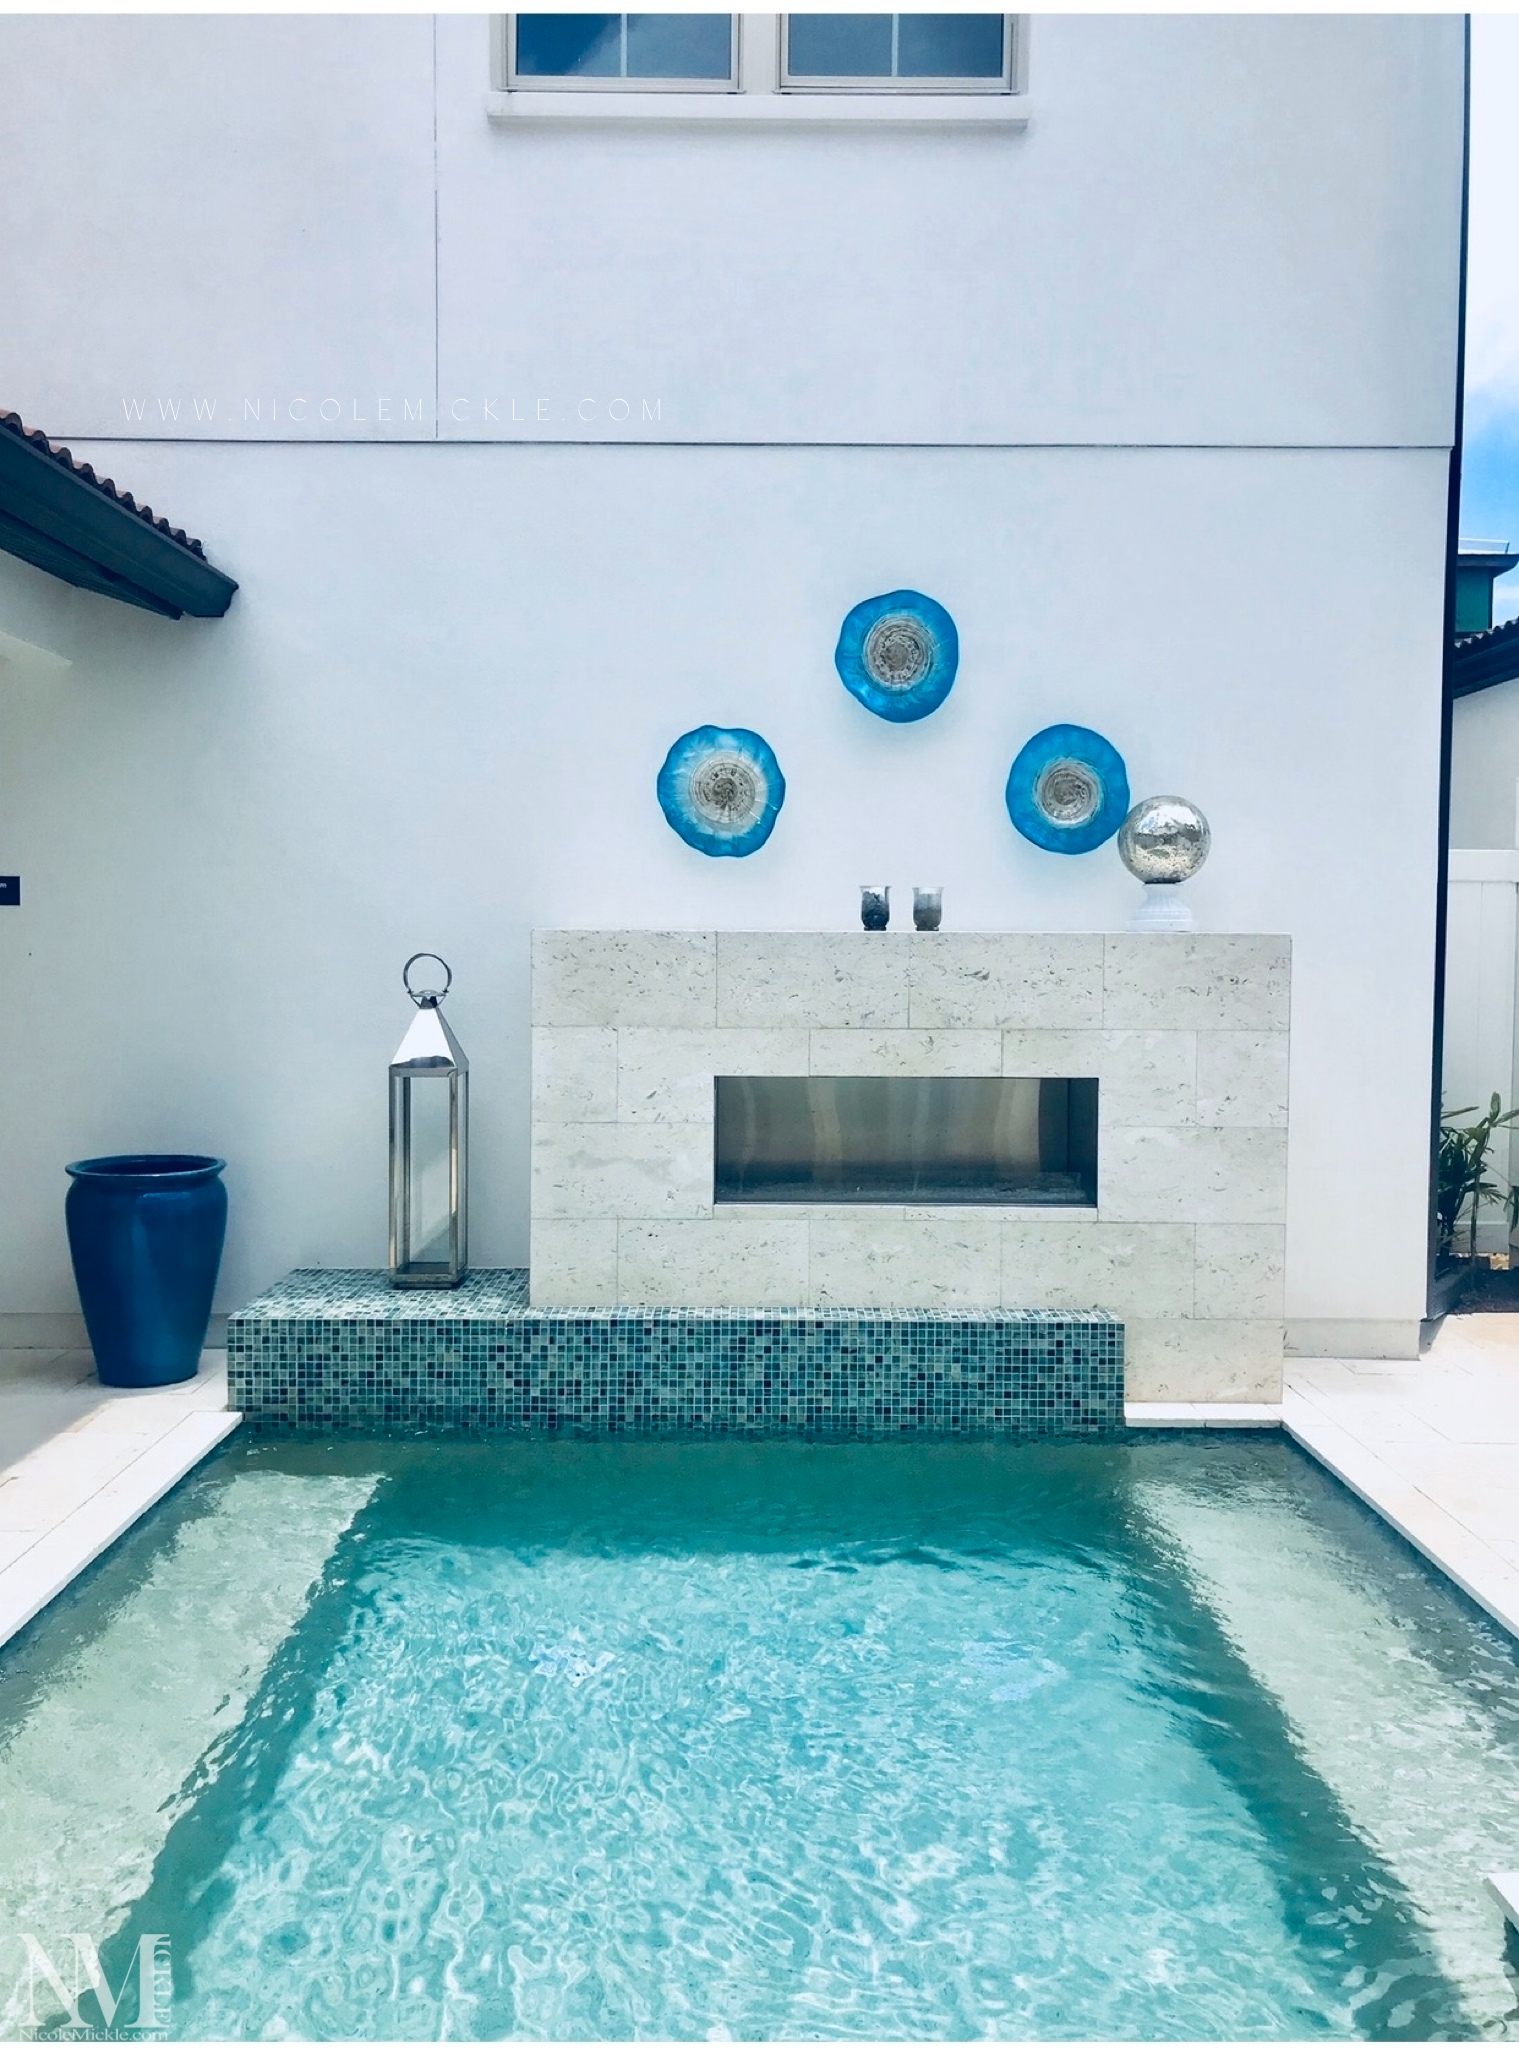 Luxury pool design can be found in small spaces too! Sharing this Winter Garden townhome with connecting in law suite above the garage.  Sharing more pool design in this post! 💦 #luxurypools #FloridaLiving